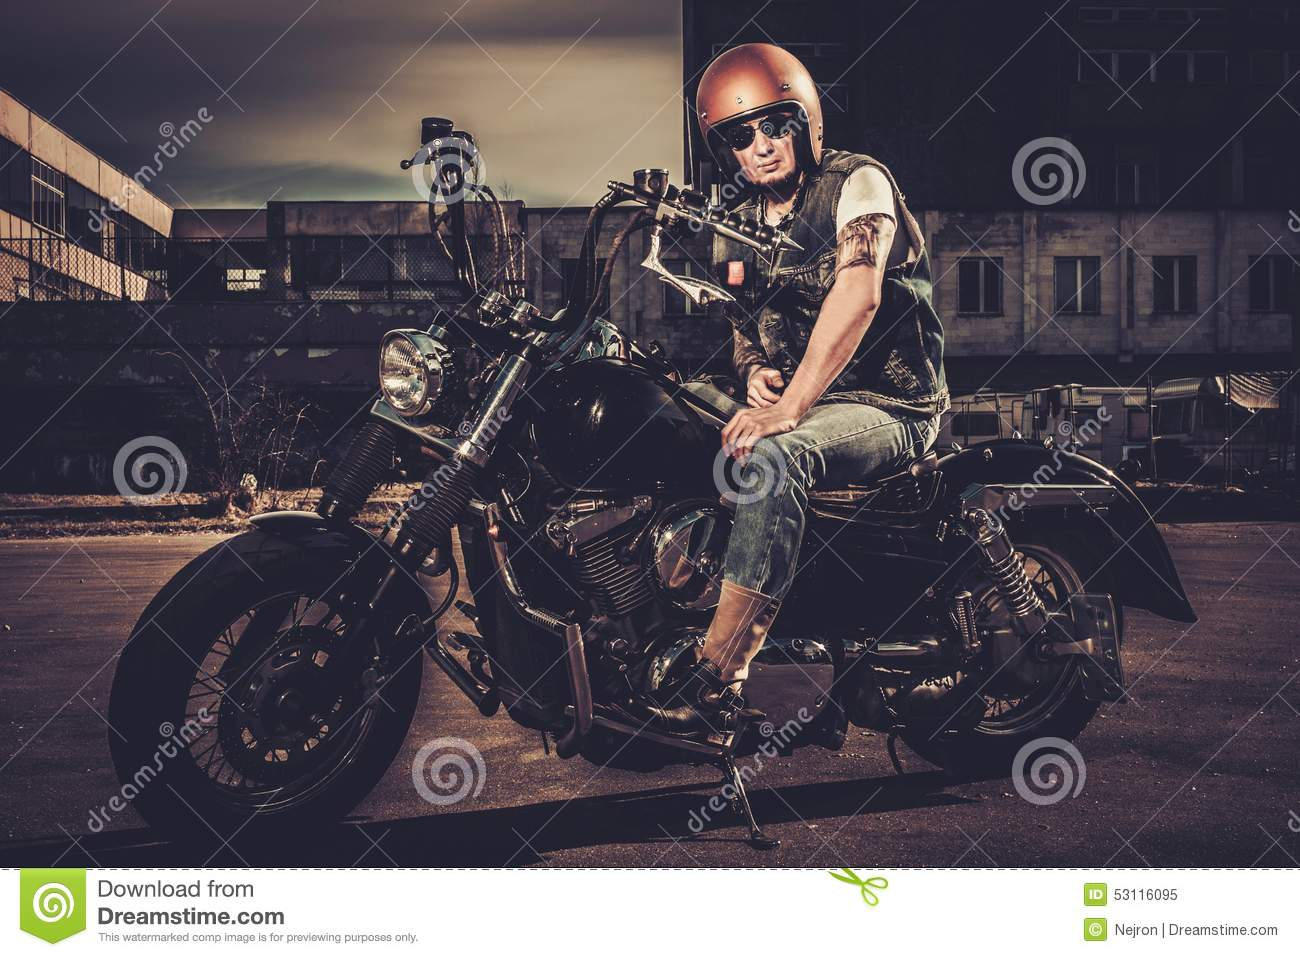 Biker and his bobber style motorcycle